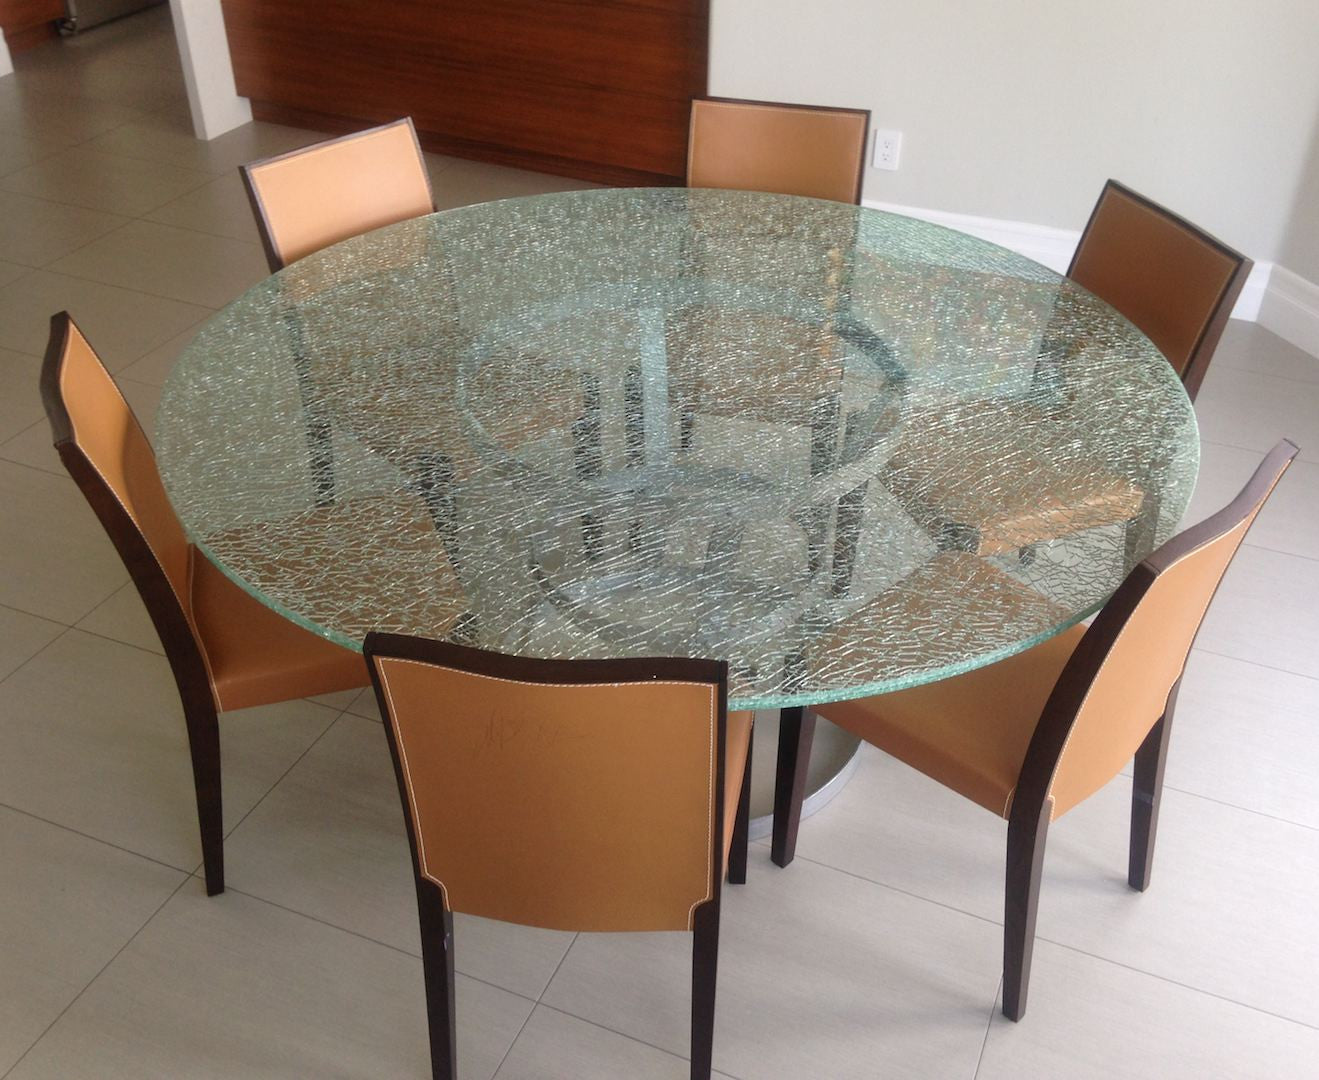 Wood And Metal Round Dining Table Part - 36: Round Crackle Glass Dining Table With Tripod Metal Base